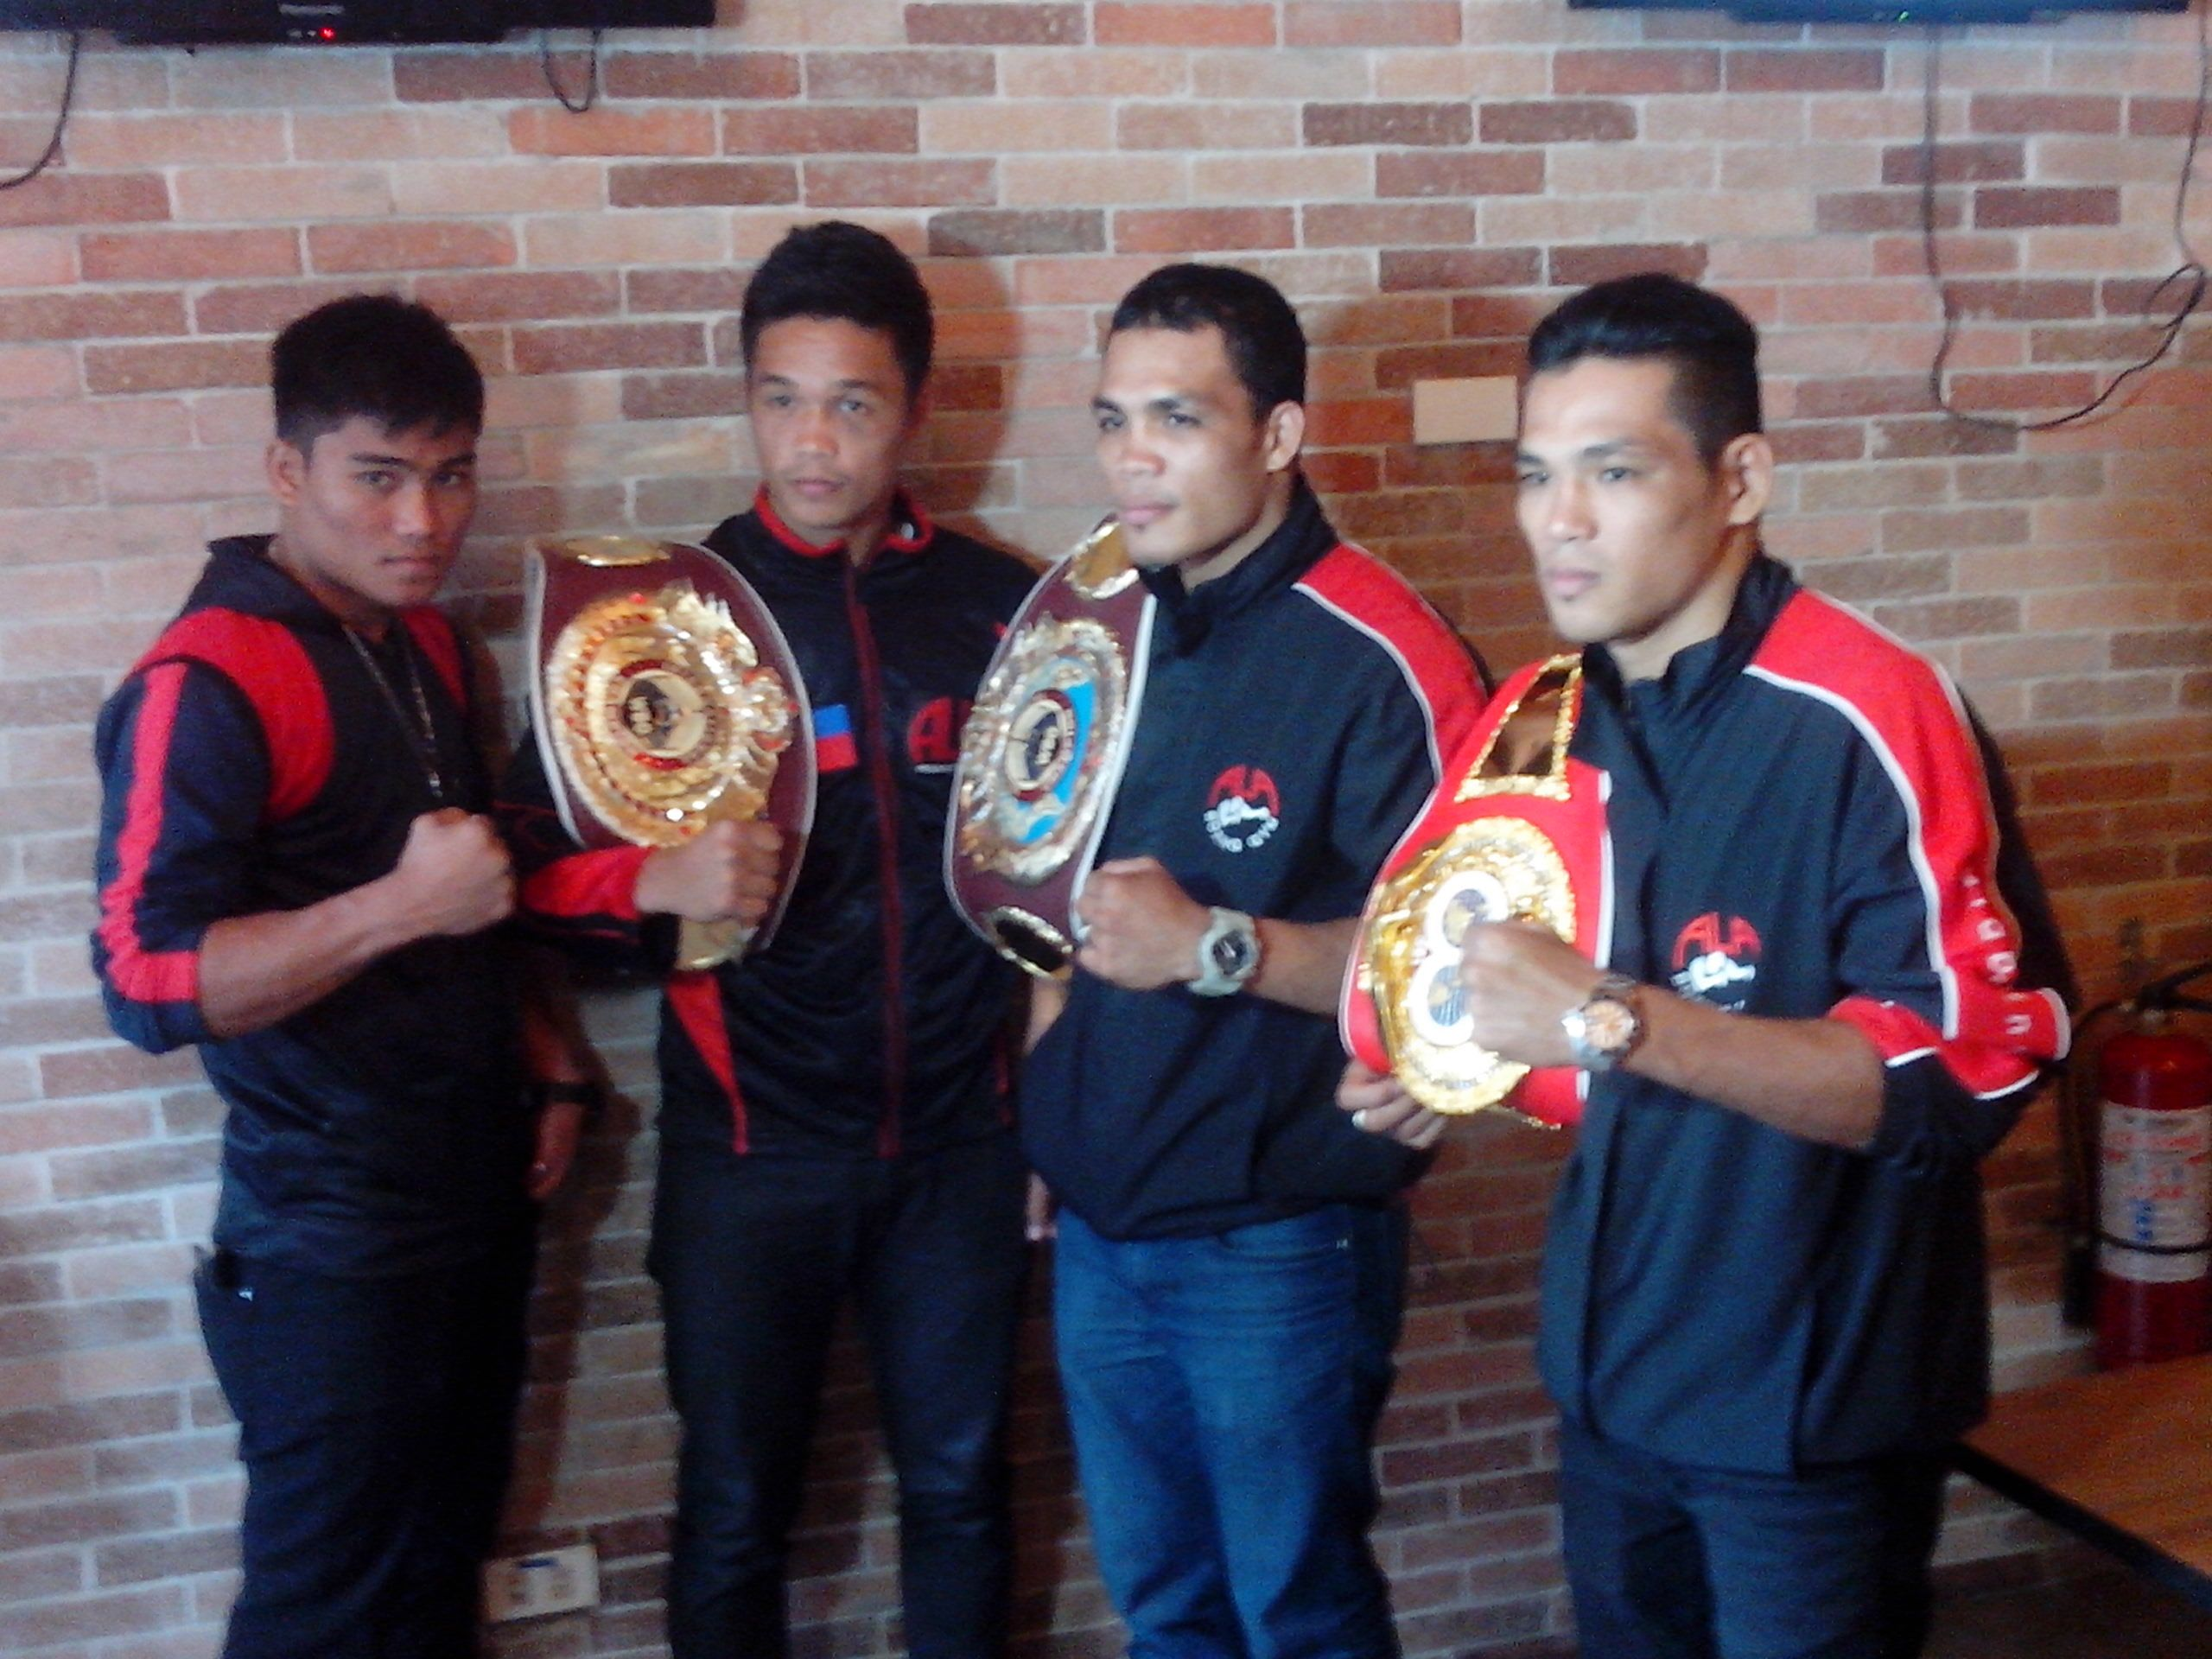 Jason Pagara hopes to make the most of opportunity as he headlines Pinoy Pride 29